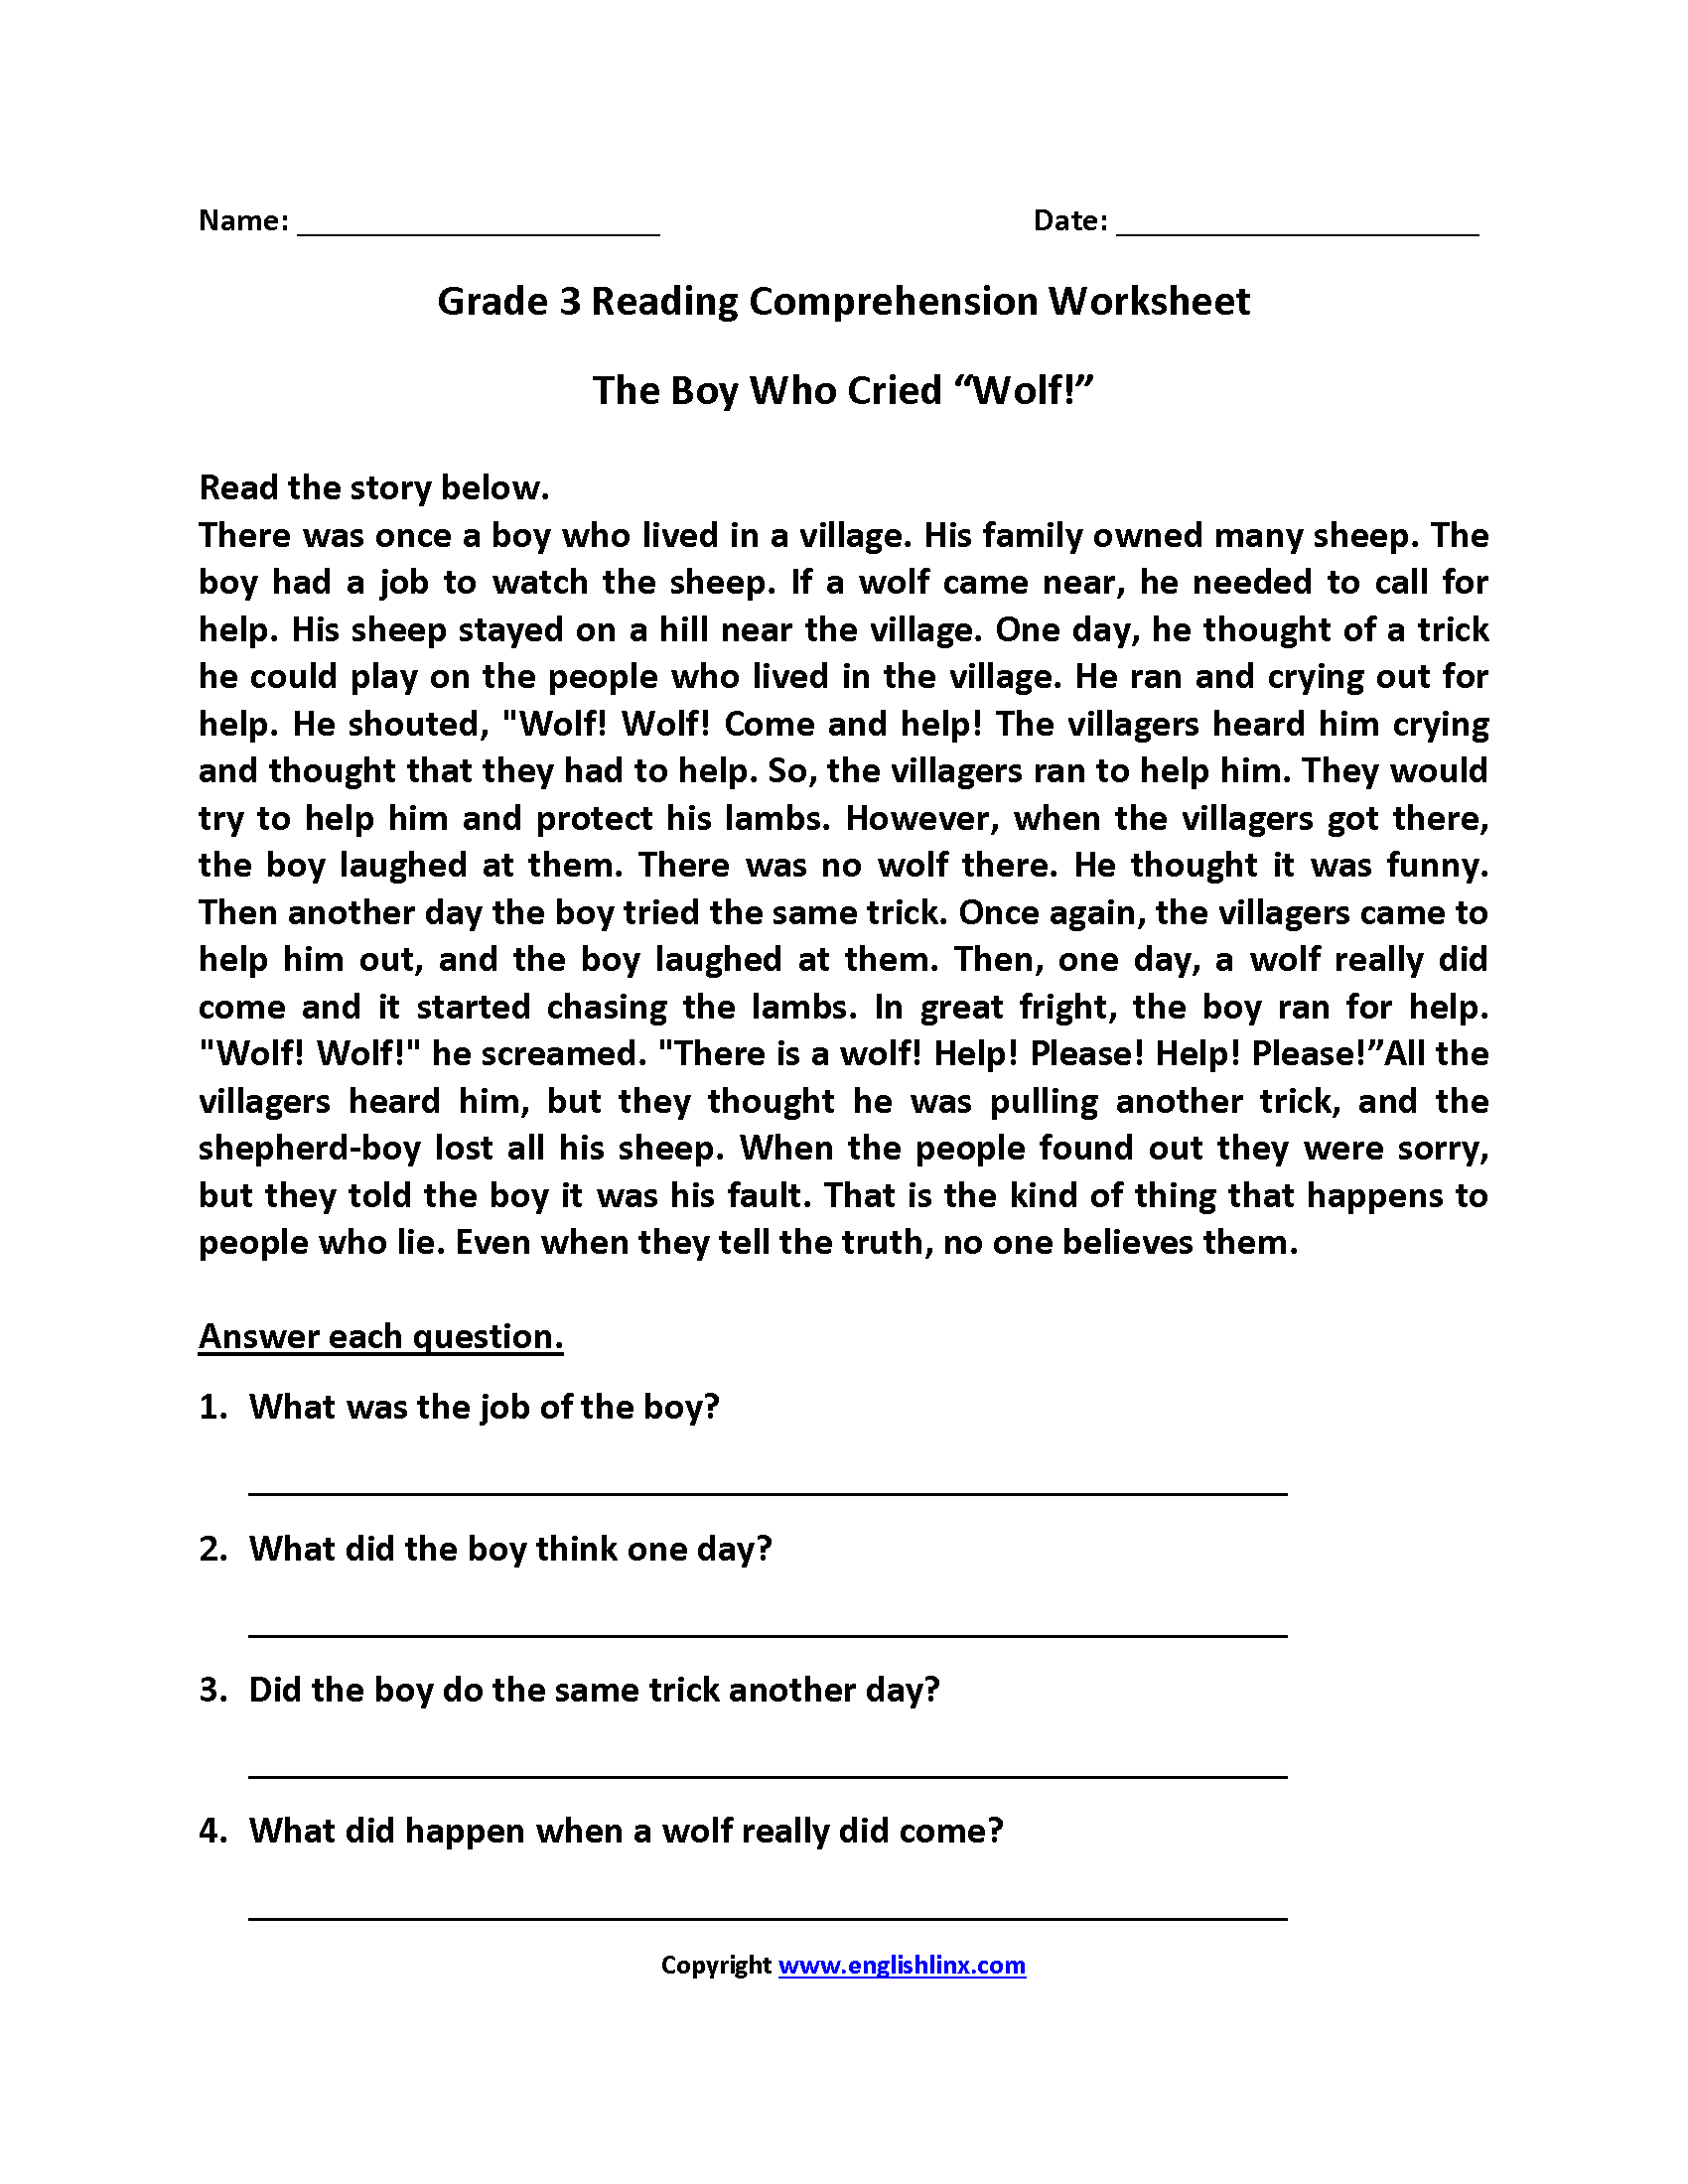 Worksheets Reading Comprehension Worksheet english worksheets reading worksheets